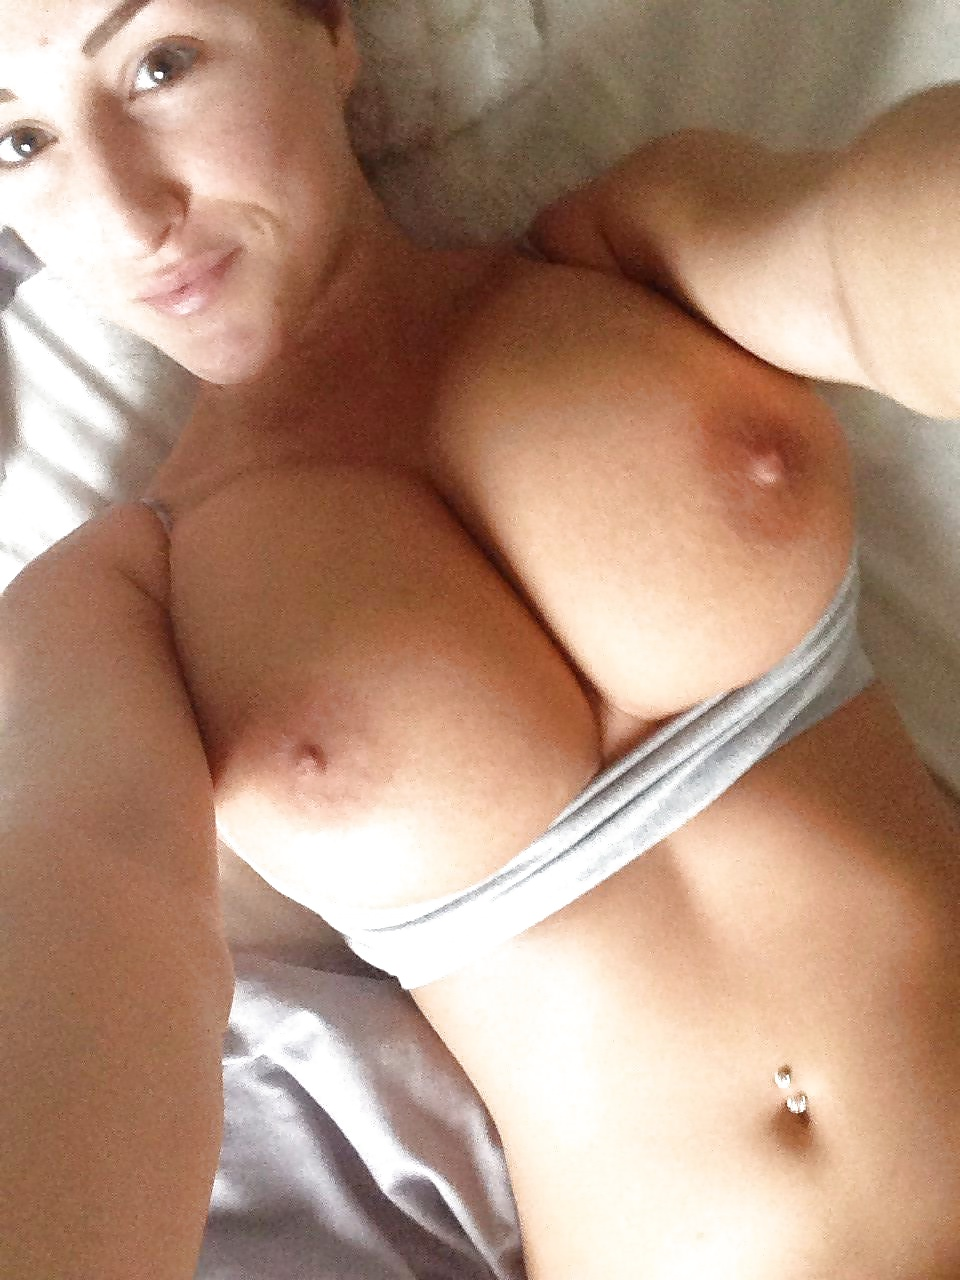 big-breasted-women-naked-selfies